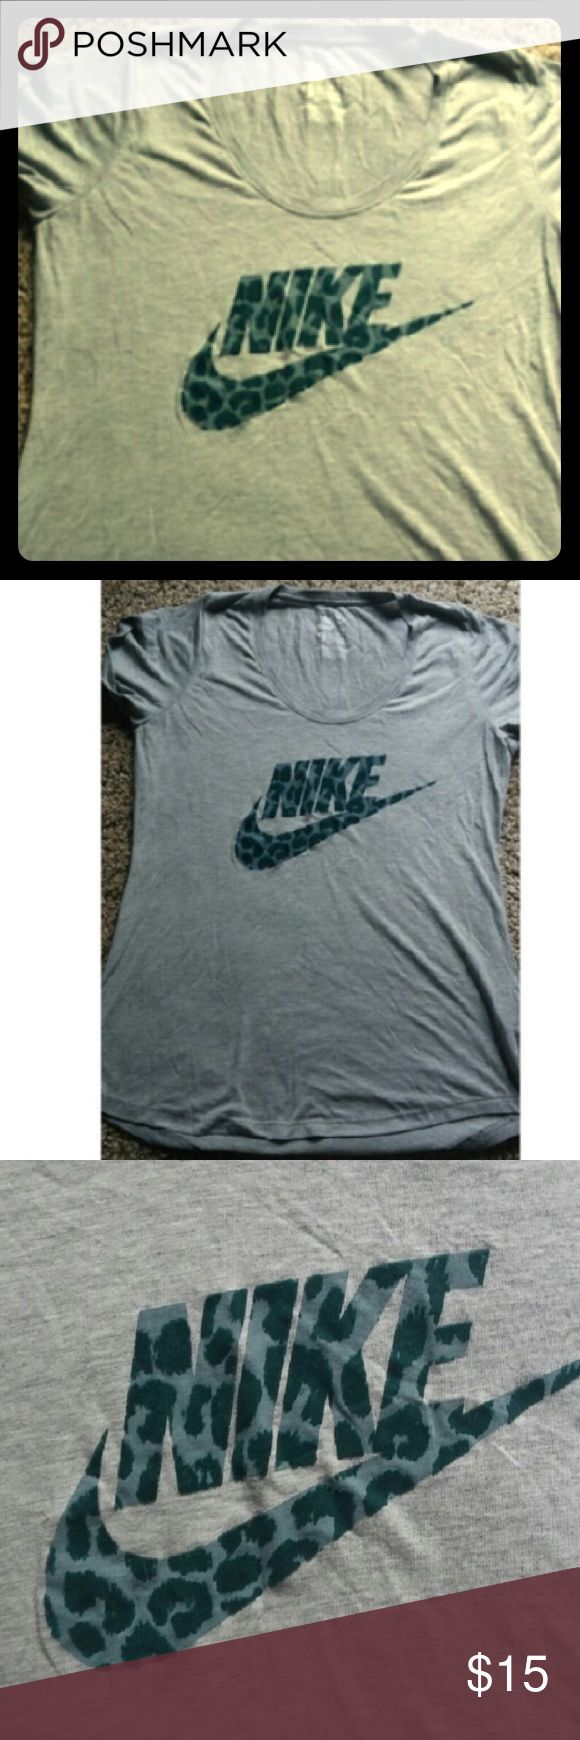 Nike Leopard Tee Nike Leopard Tee. Turquoise lettering with deep teal, flocked leopard spots. Scoop neck on light grey cotton. Nike Tops Tees - Short Sleeve